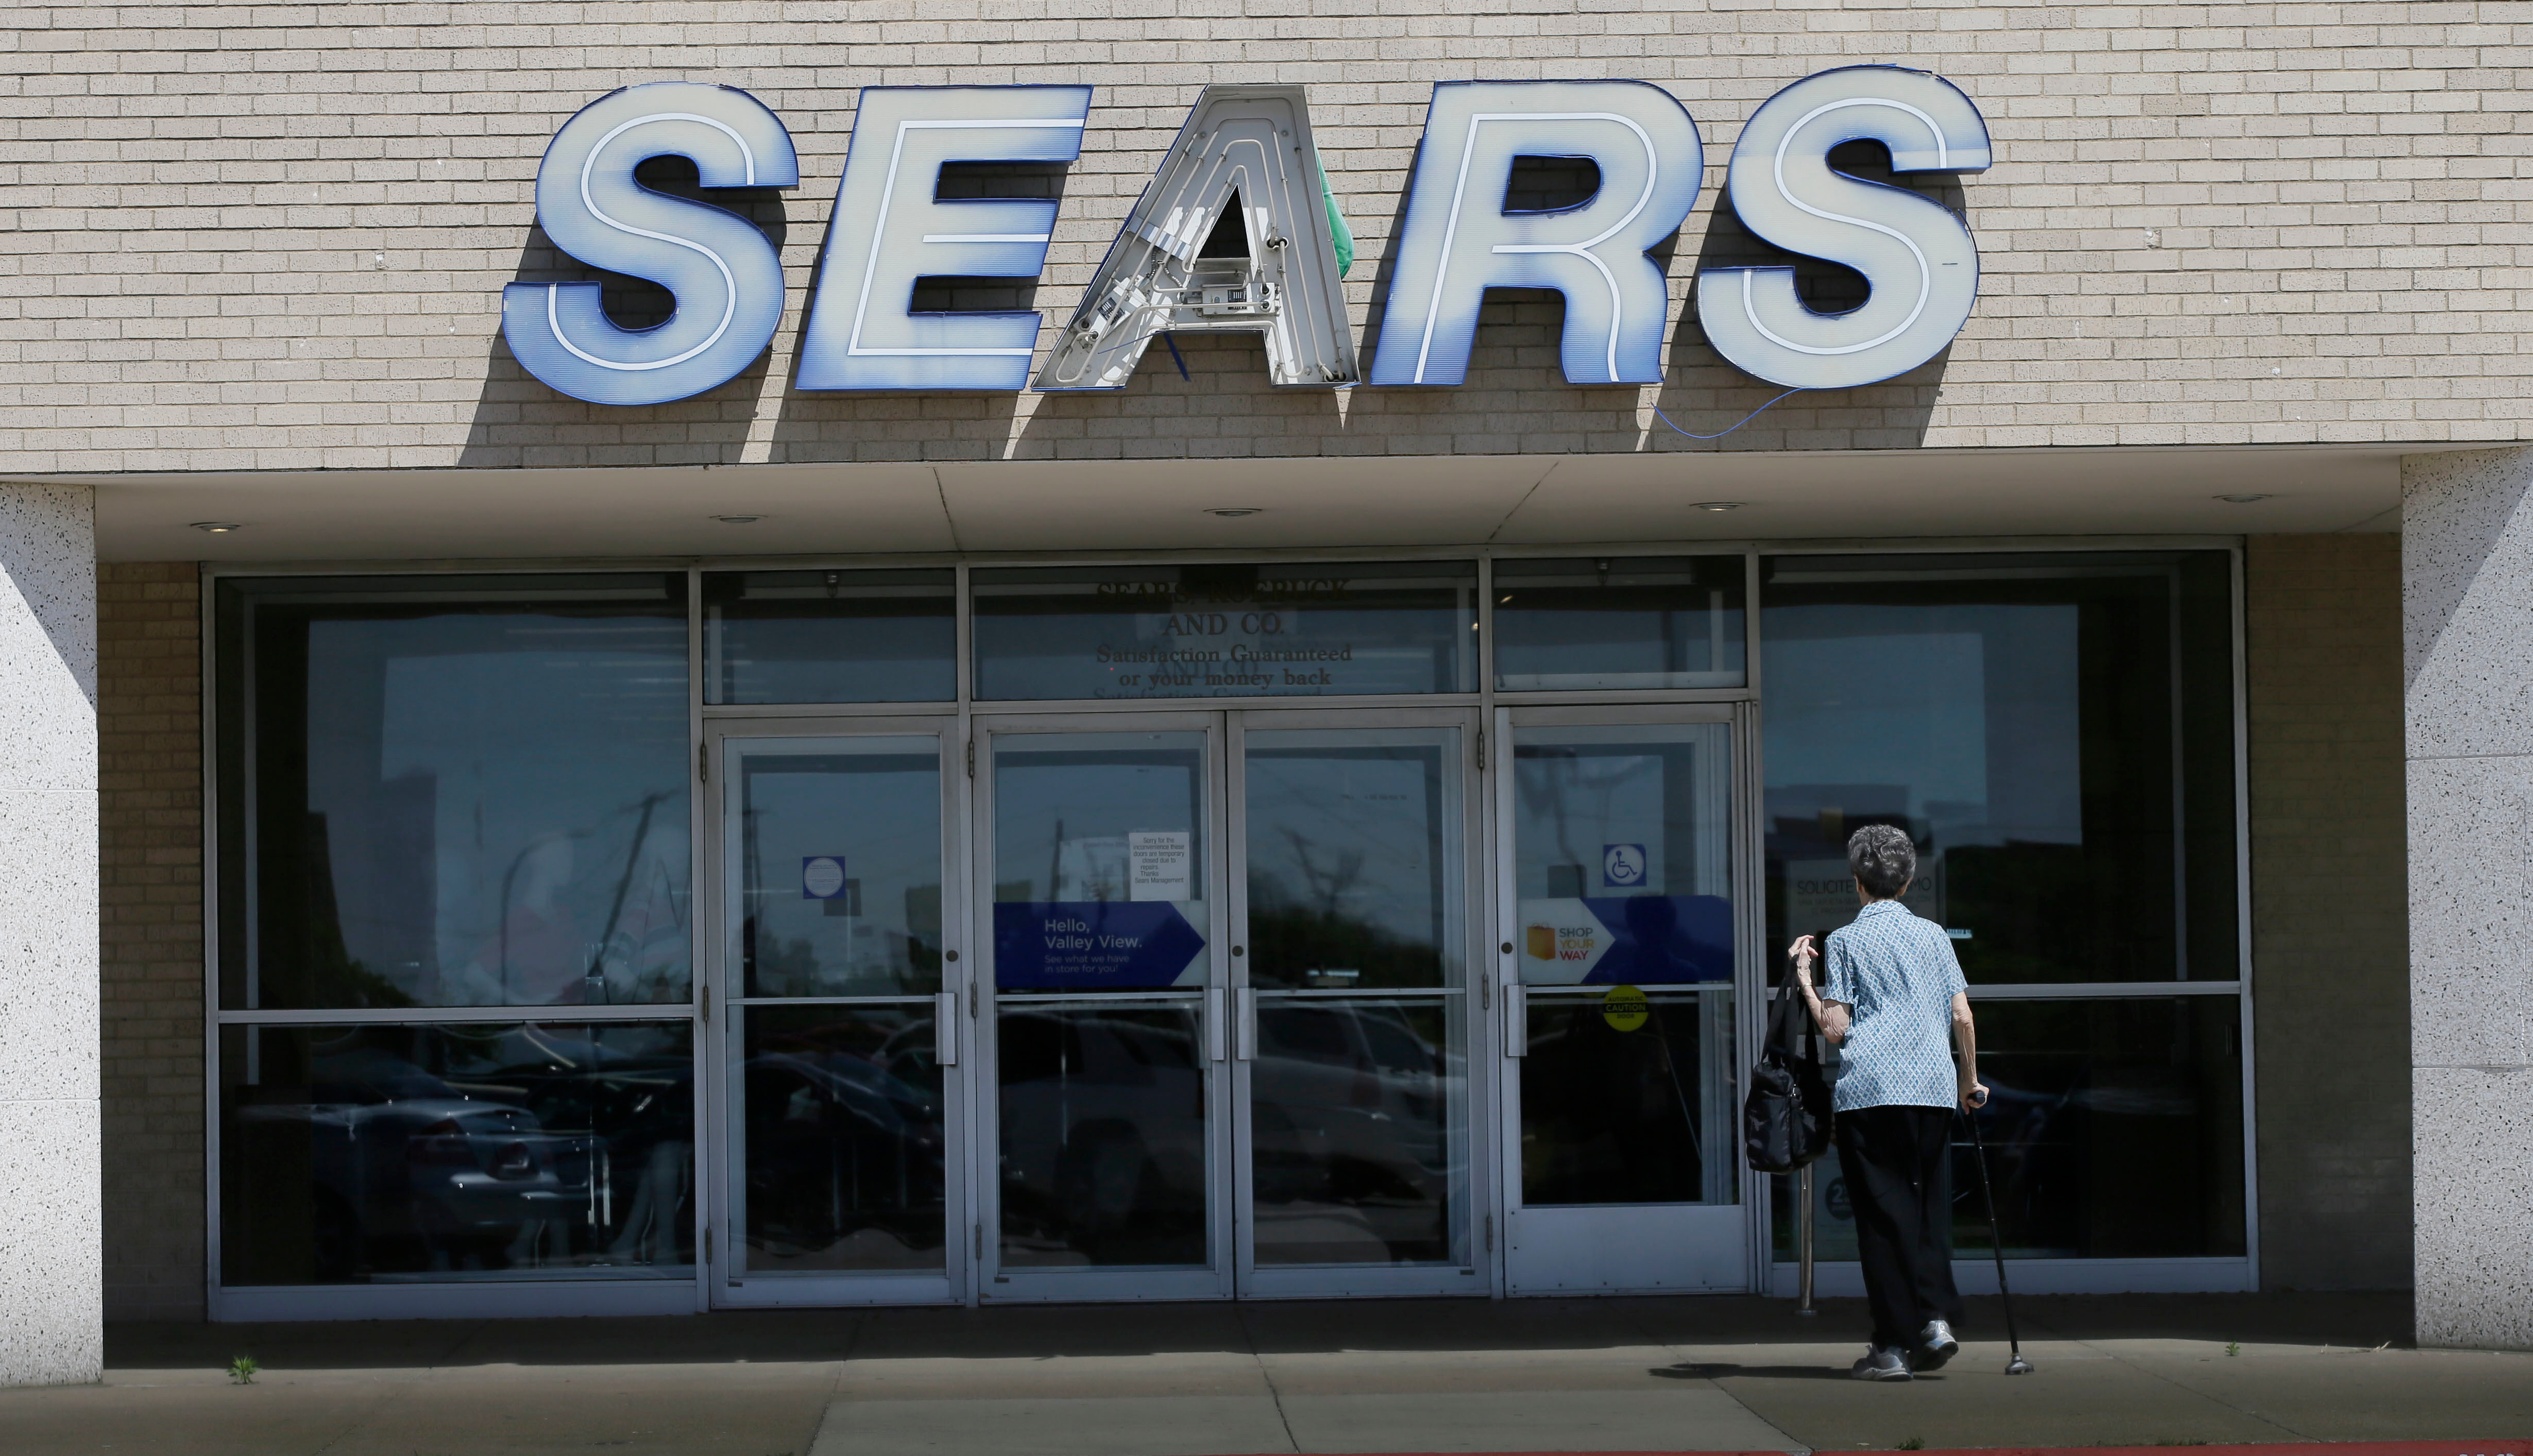 An elderly woman walks outside a Sears retail store scheduled to be shut down in north DallasSears, Dallas, USA - 23 Mar 2017